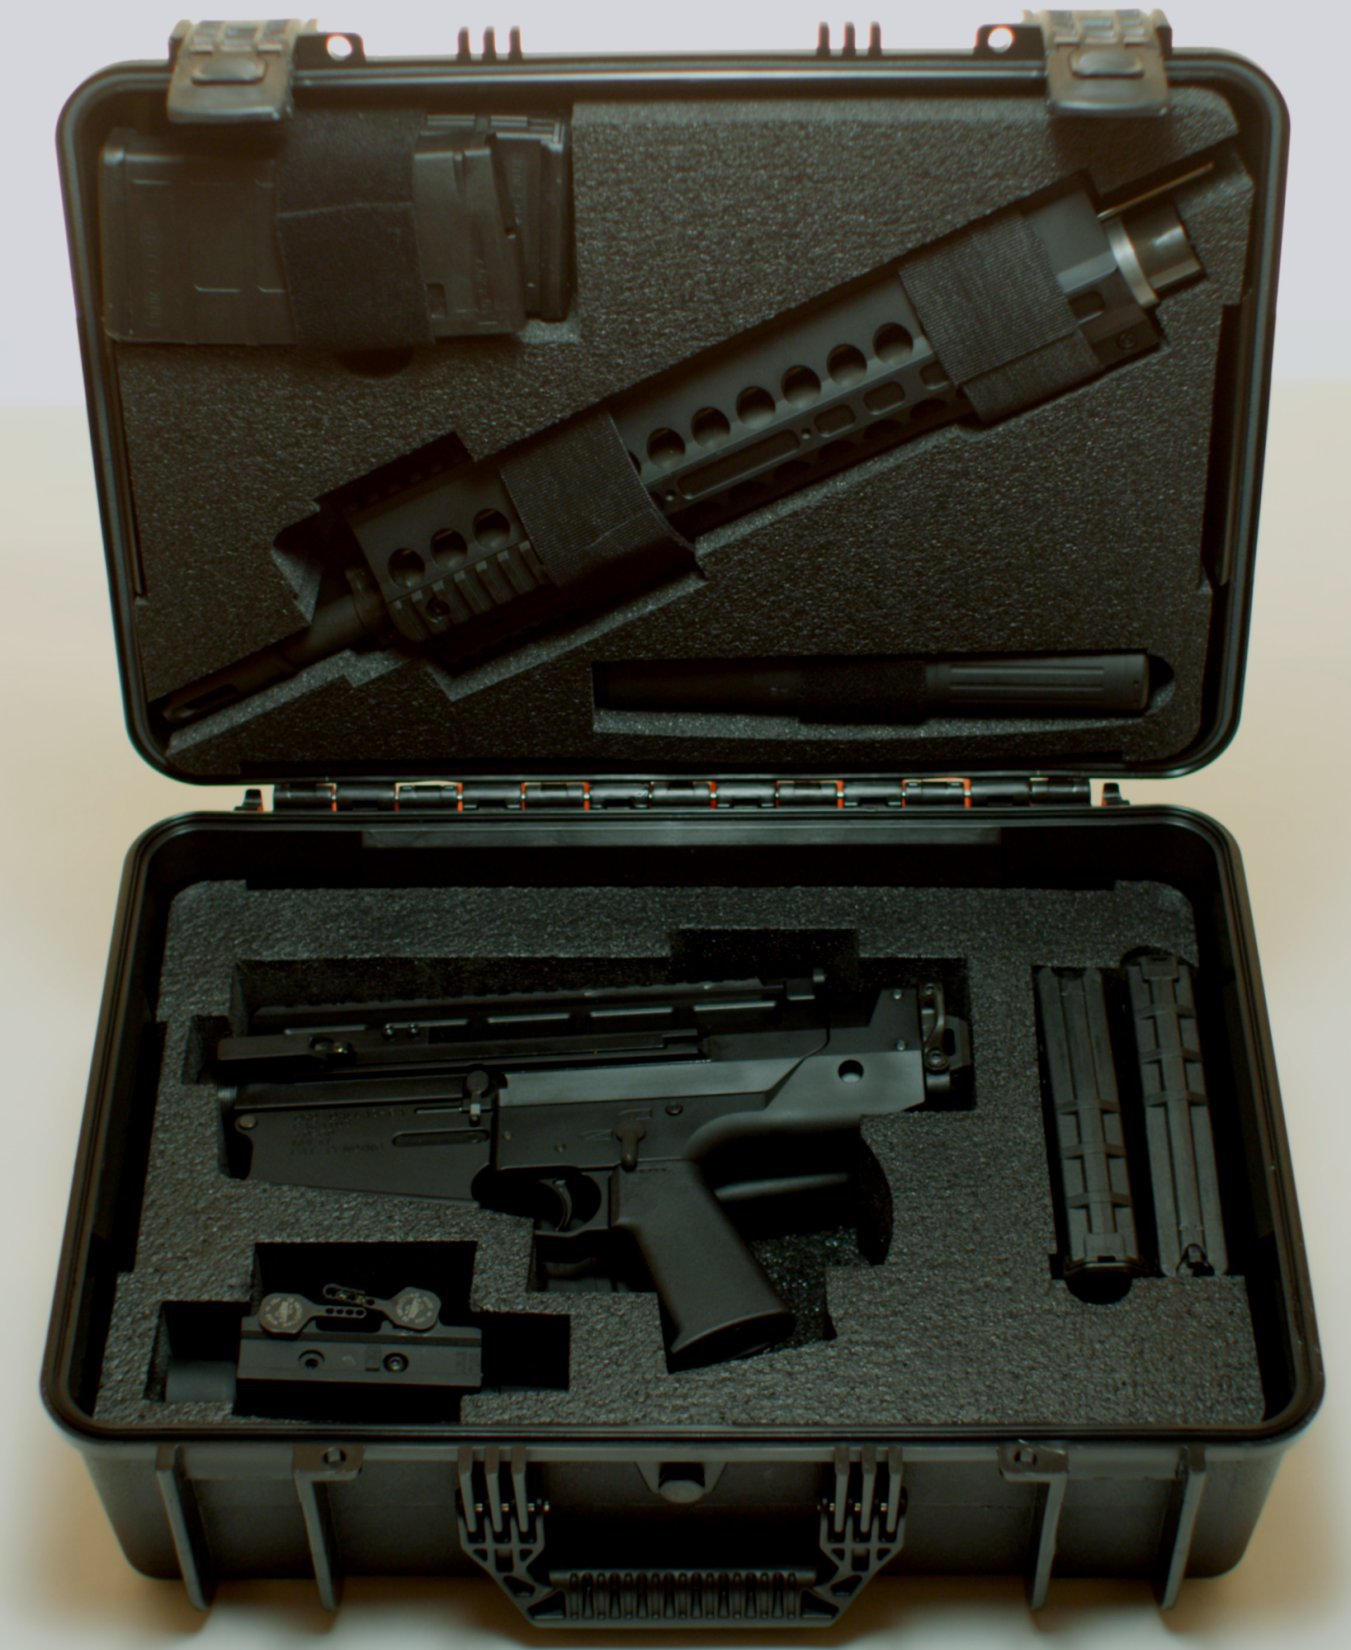 DRD Tactical Paratus P762 Gen 2 Rifle 7.62mm .308 Win. Tactical Takedown Rifle Carbine and U76 QD Upper 2 DRD Tactical Paratus P762 Gen 2 7.62mm NATO/.308 Win. Tactical Takedown AR Rifle/Carbine/SBR and U762 QD Upper Receiver for Medium to Long Range Sniping on the Go (Photos!)